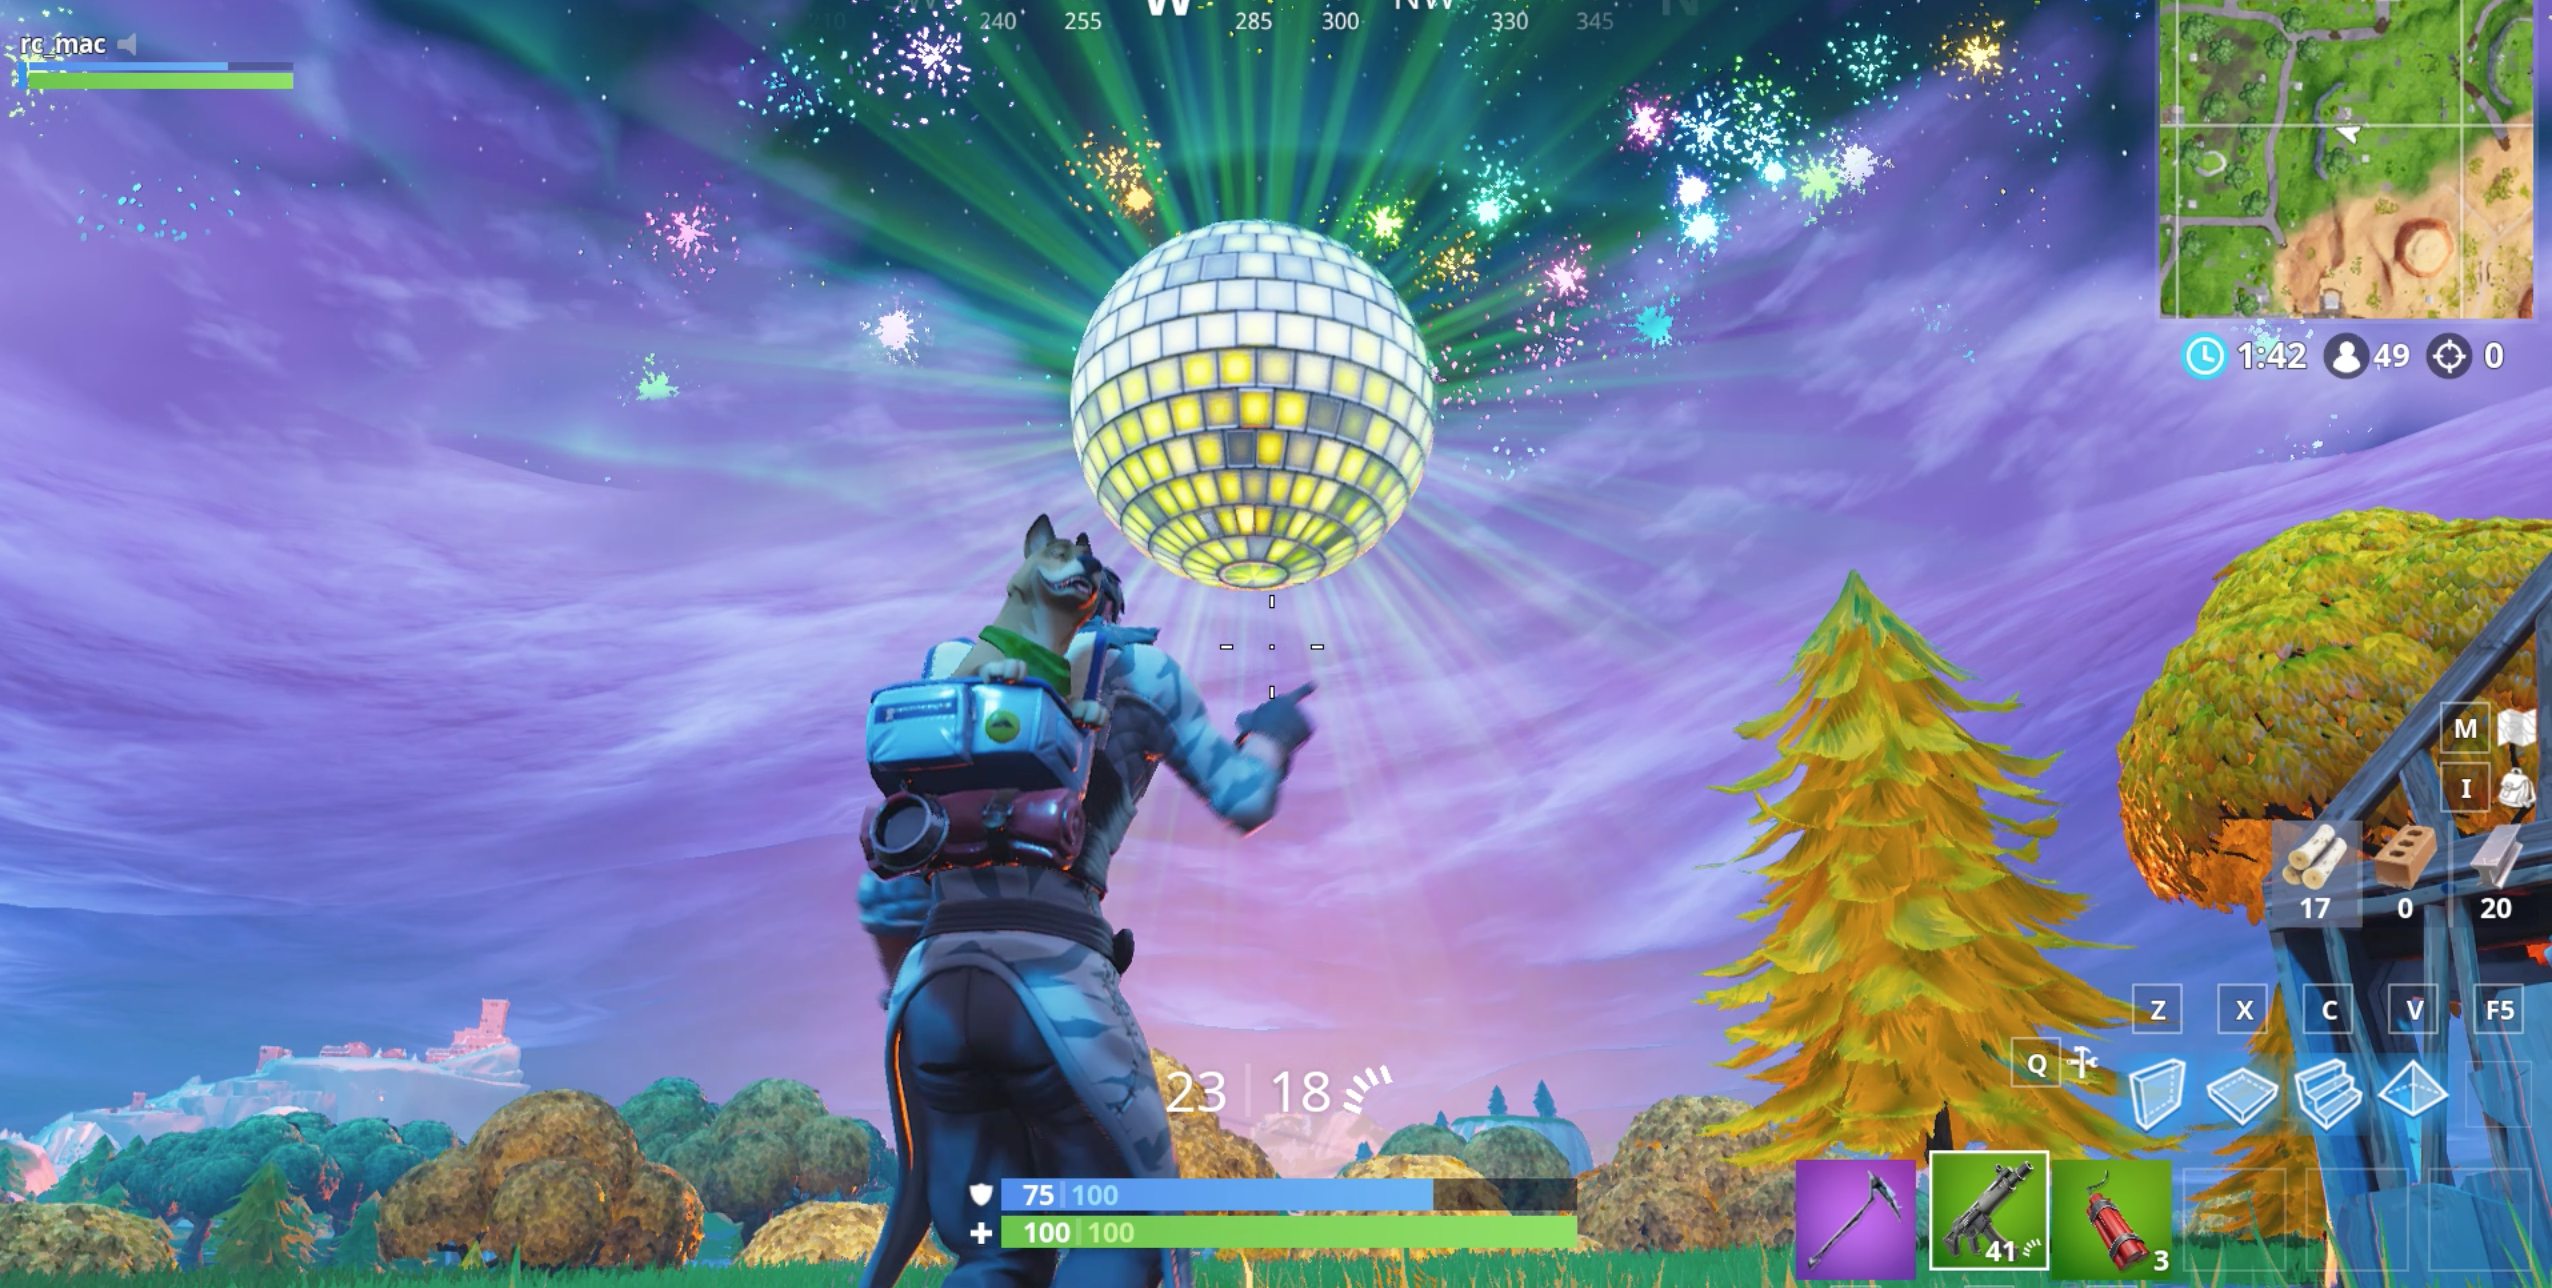 Fortnite's New Year's Eve Event Catches Some Players By Surprise